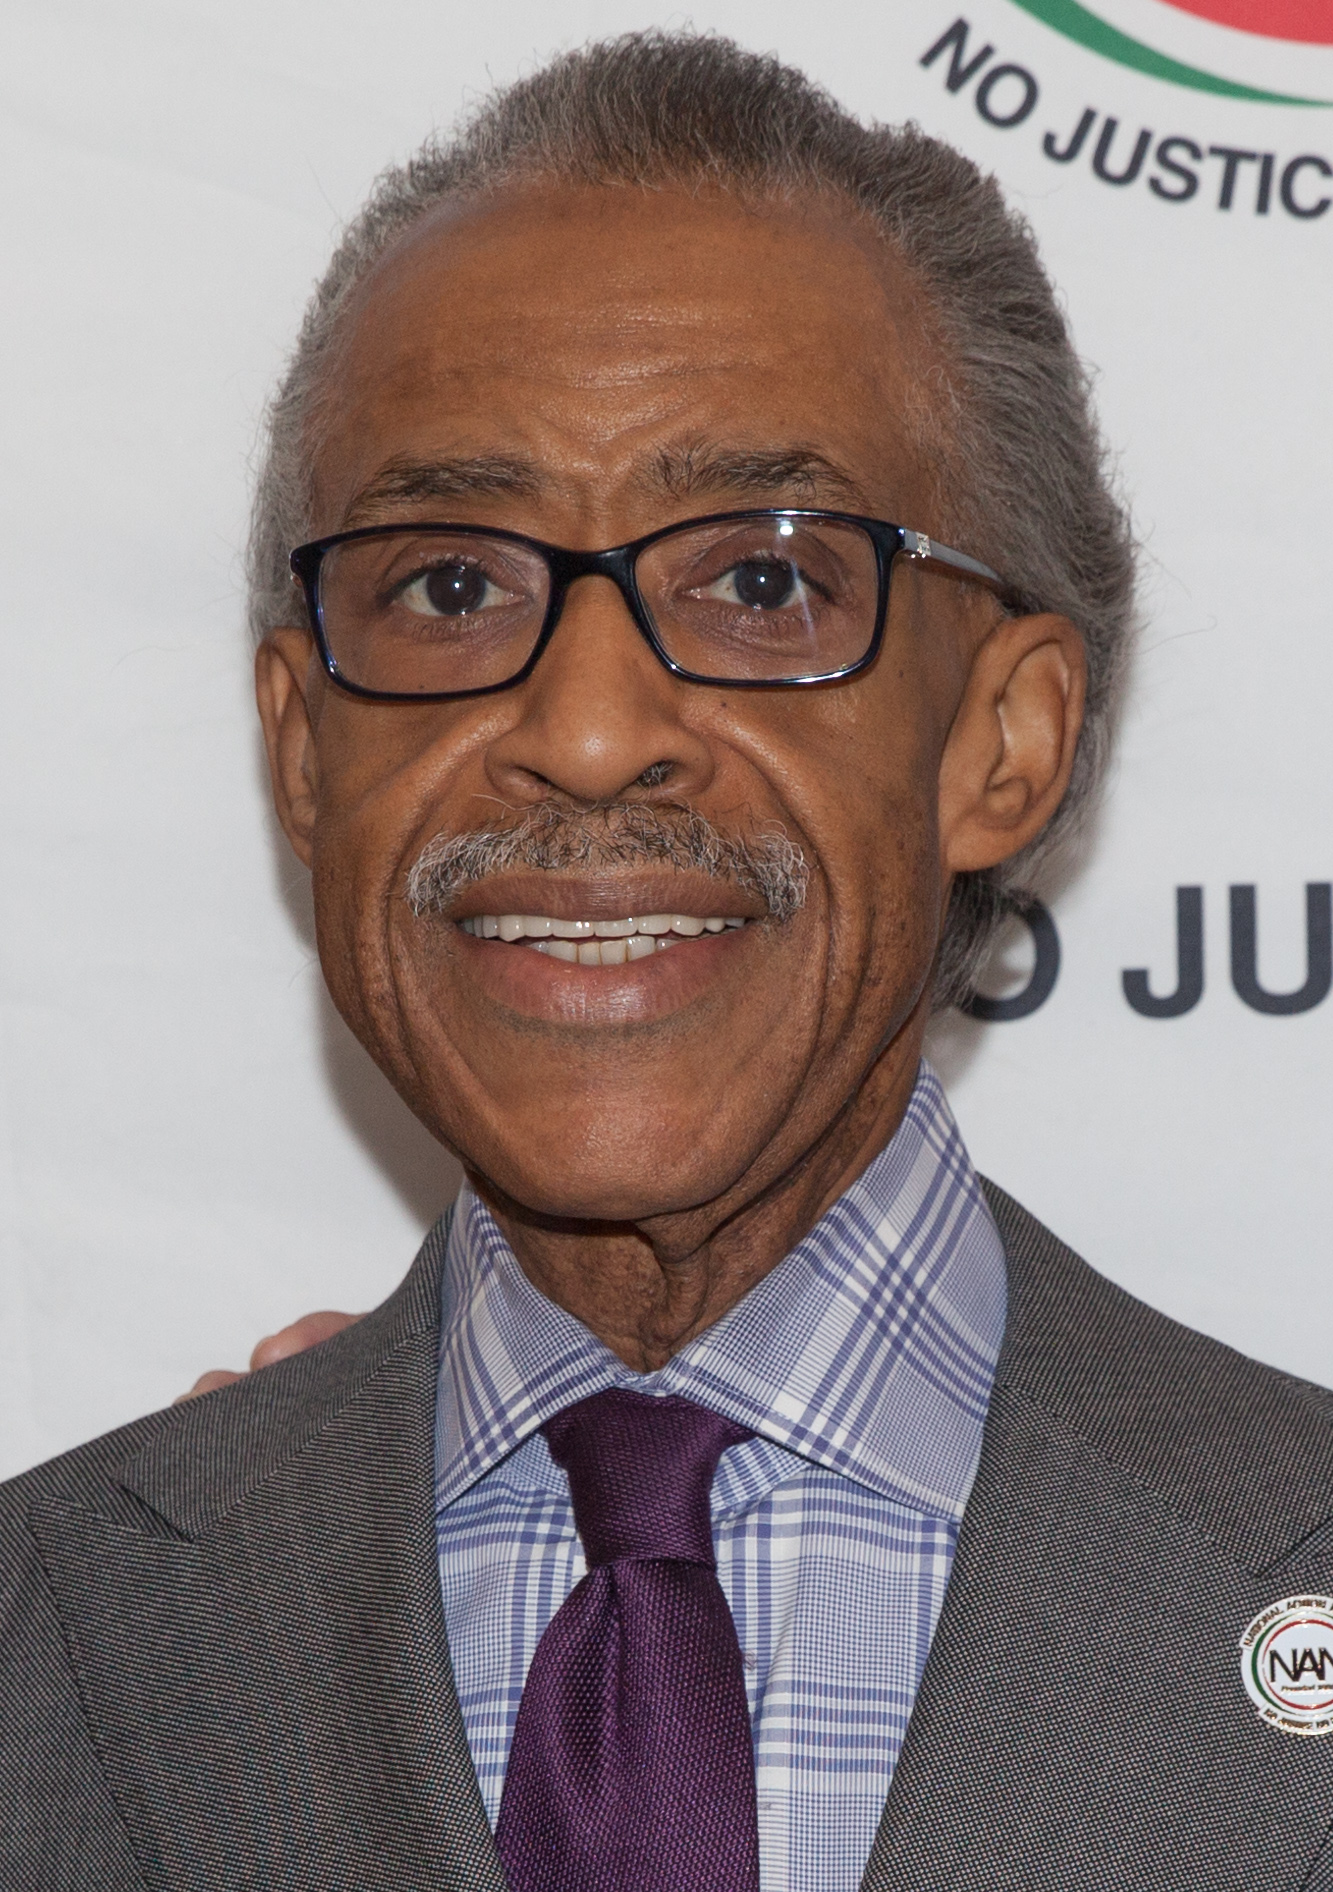 Link for the lazy.  https://upload.wikimedia.org/wikipedia/commons/5/5f/Al_Sharpton_January_2015.jpg  https://en.m.wikipedia.org/wiki/Al_Sharpton